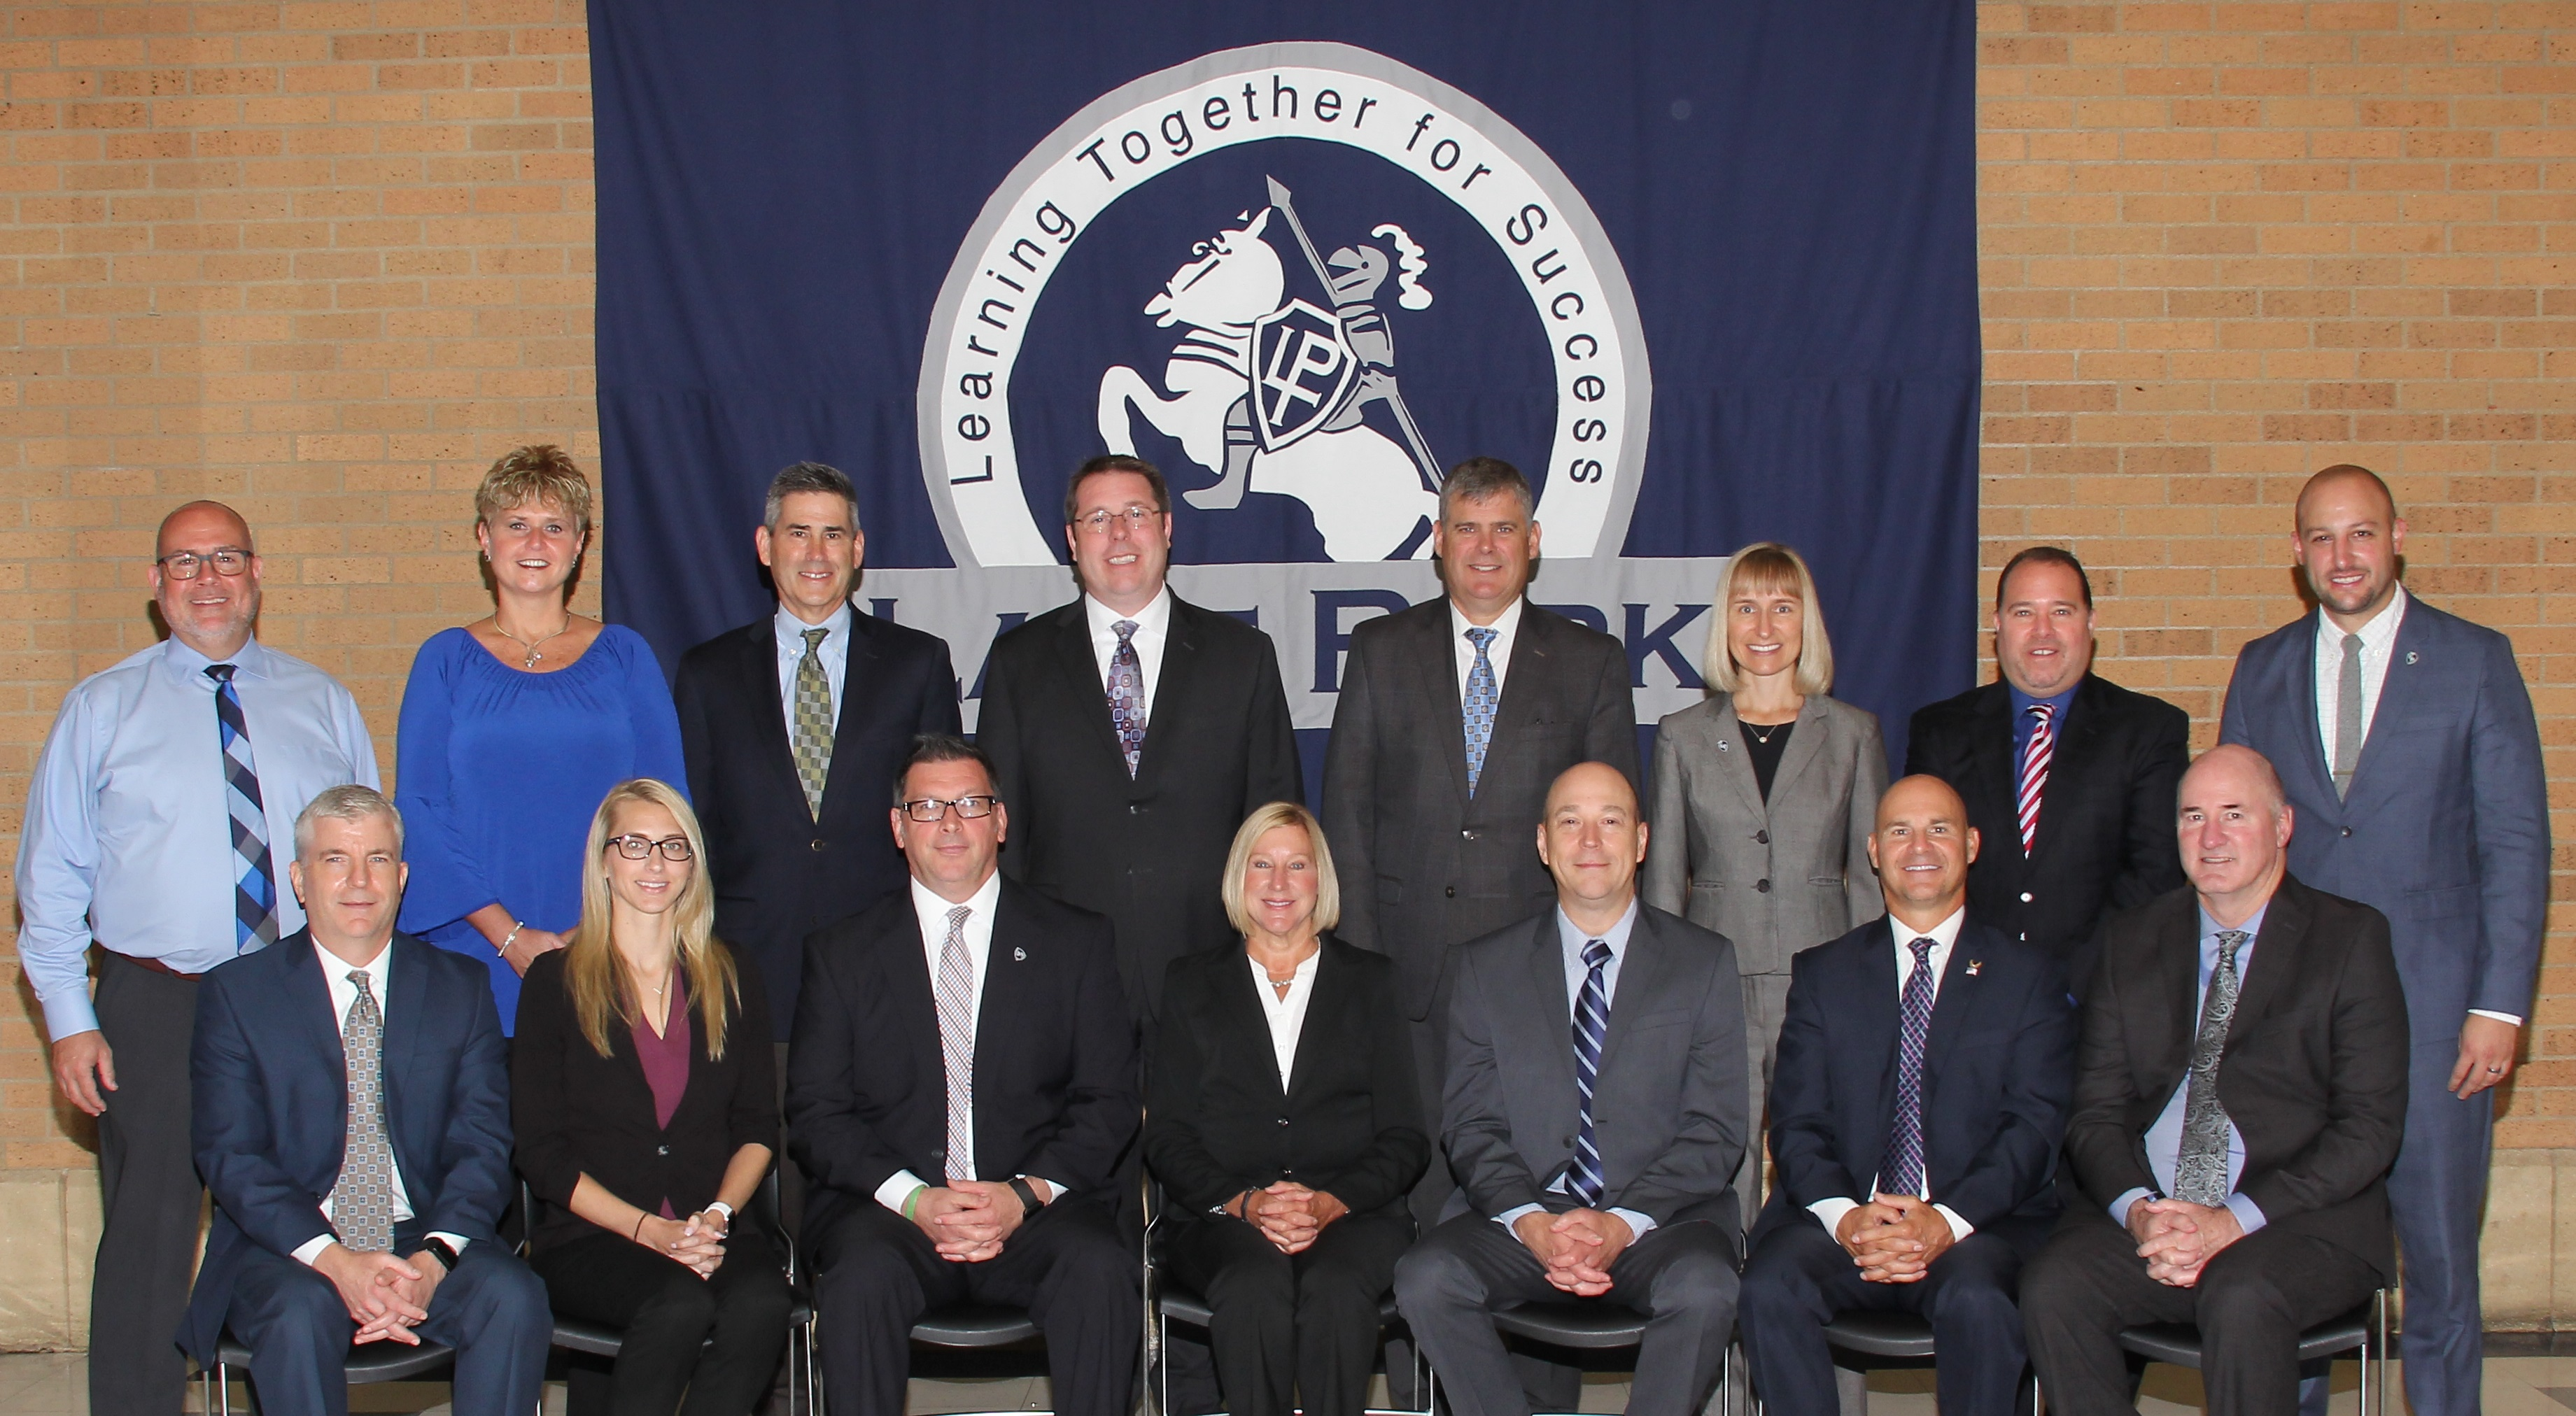 Members of the District Administrative Team